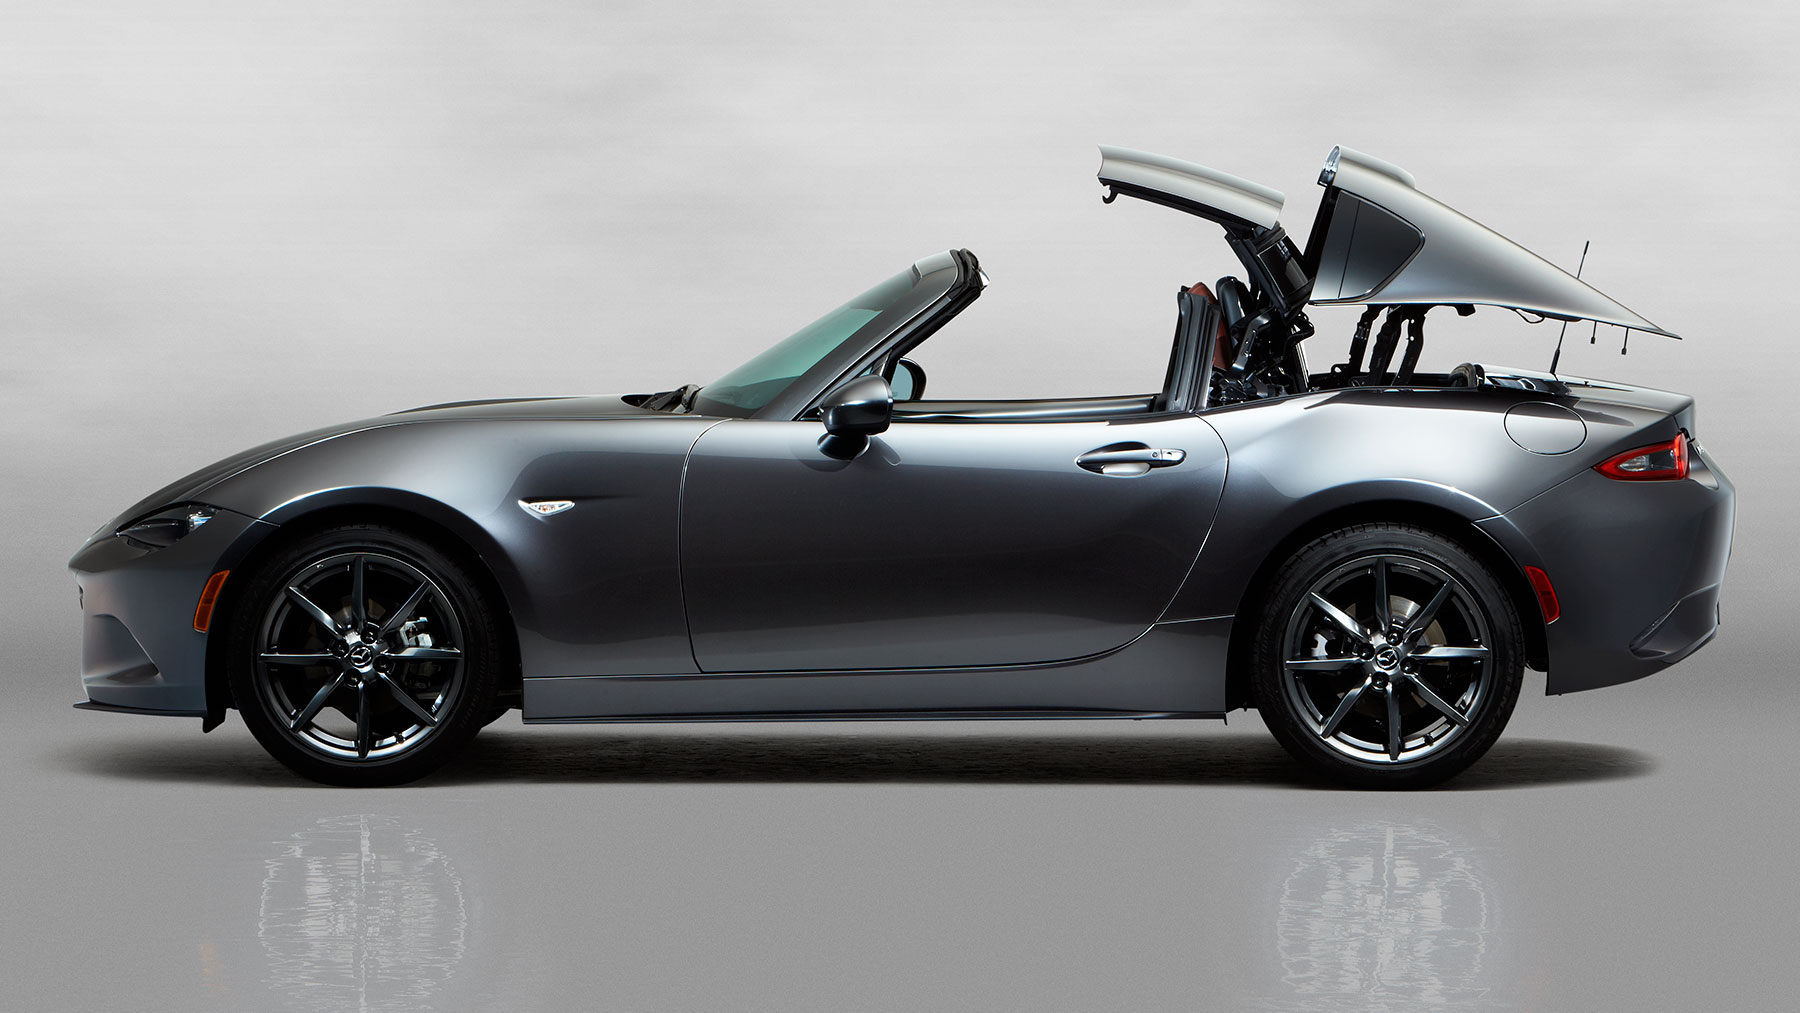 2017 Mazda MX-5 Miata Hard Top Exterior